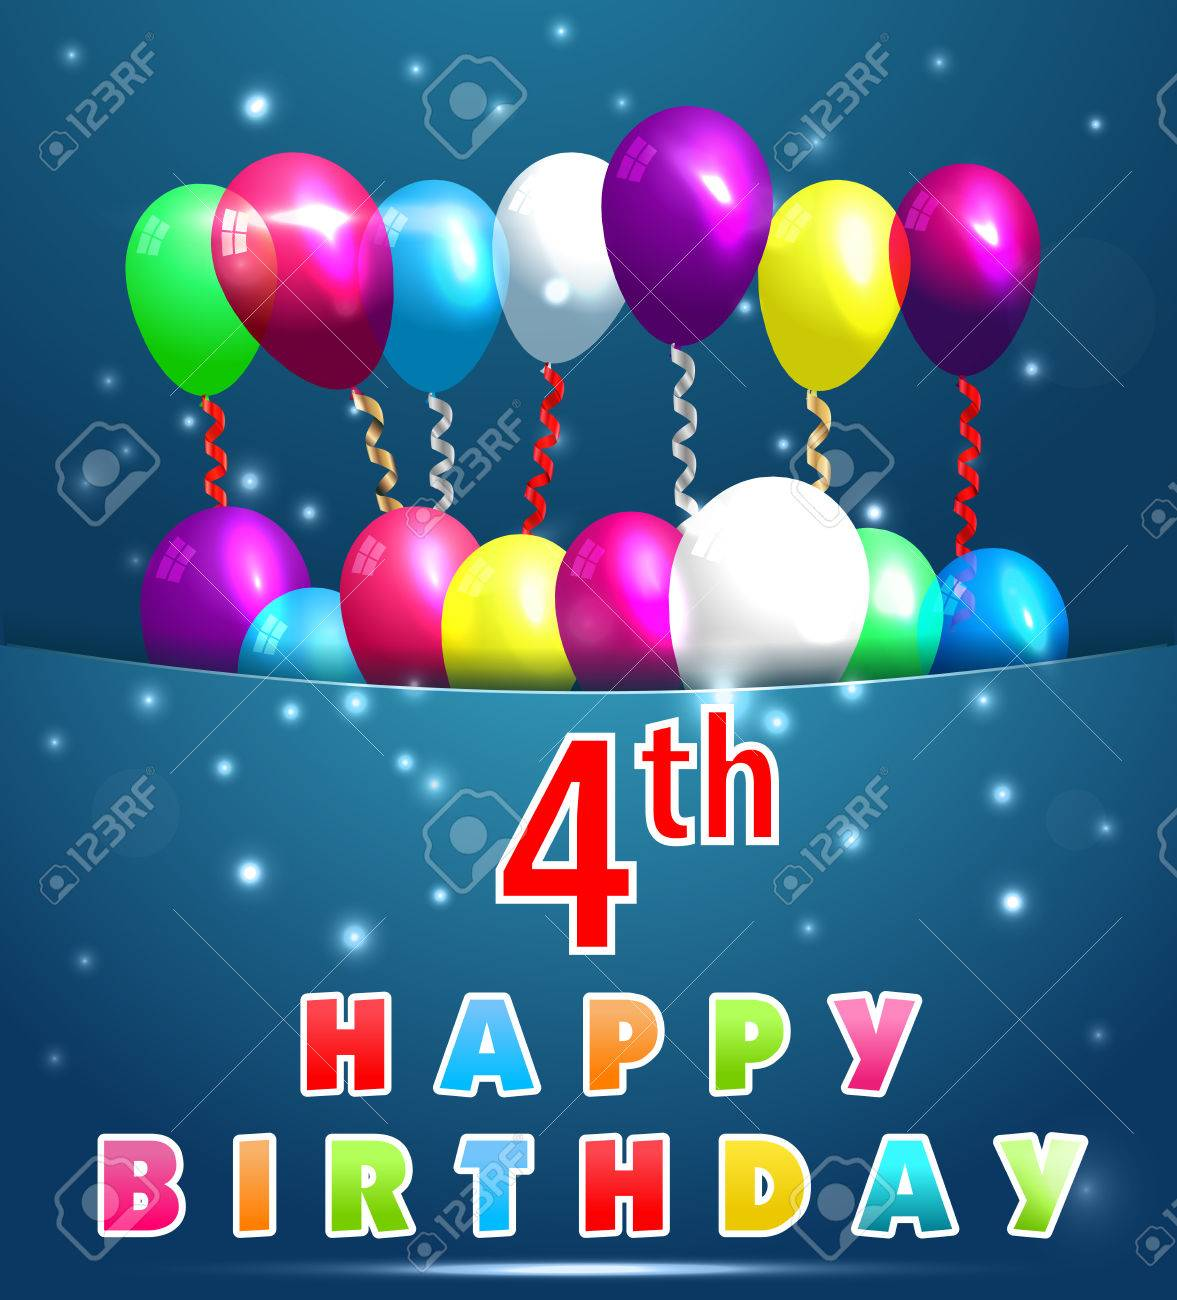 4 Year Happy Birthday Card With Balloons And Ribbons 4th Stock Vector